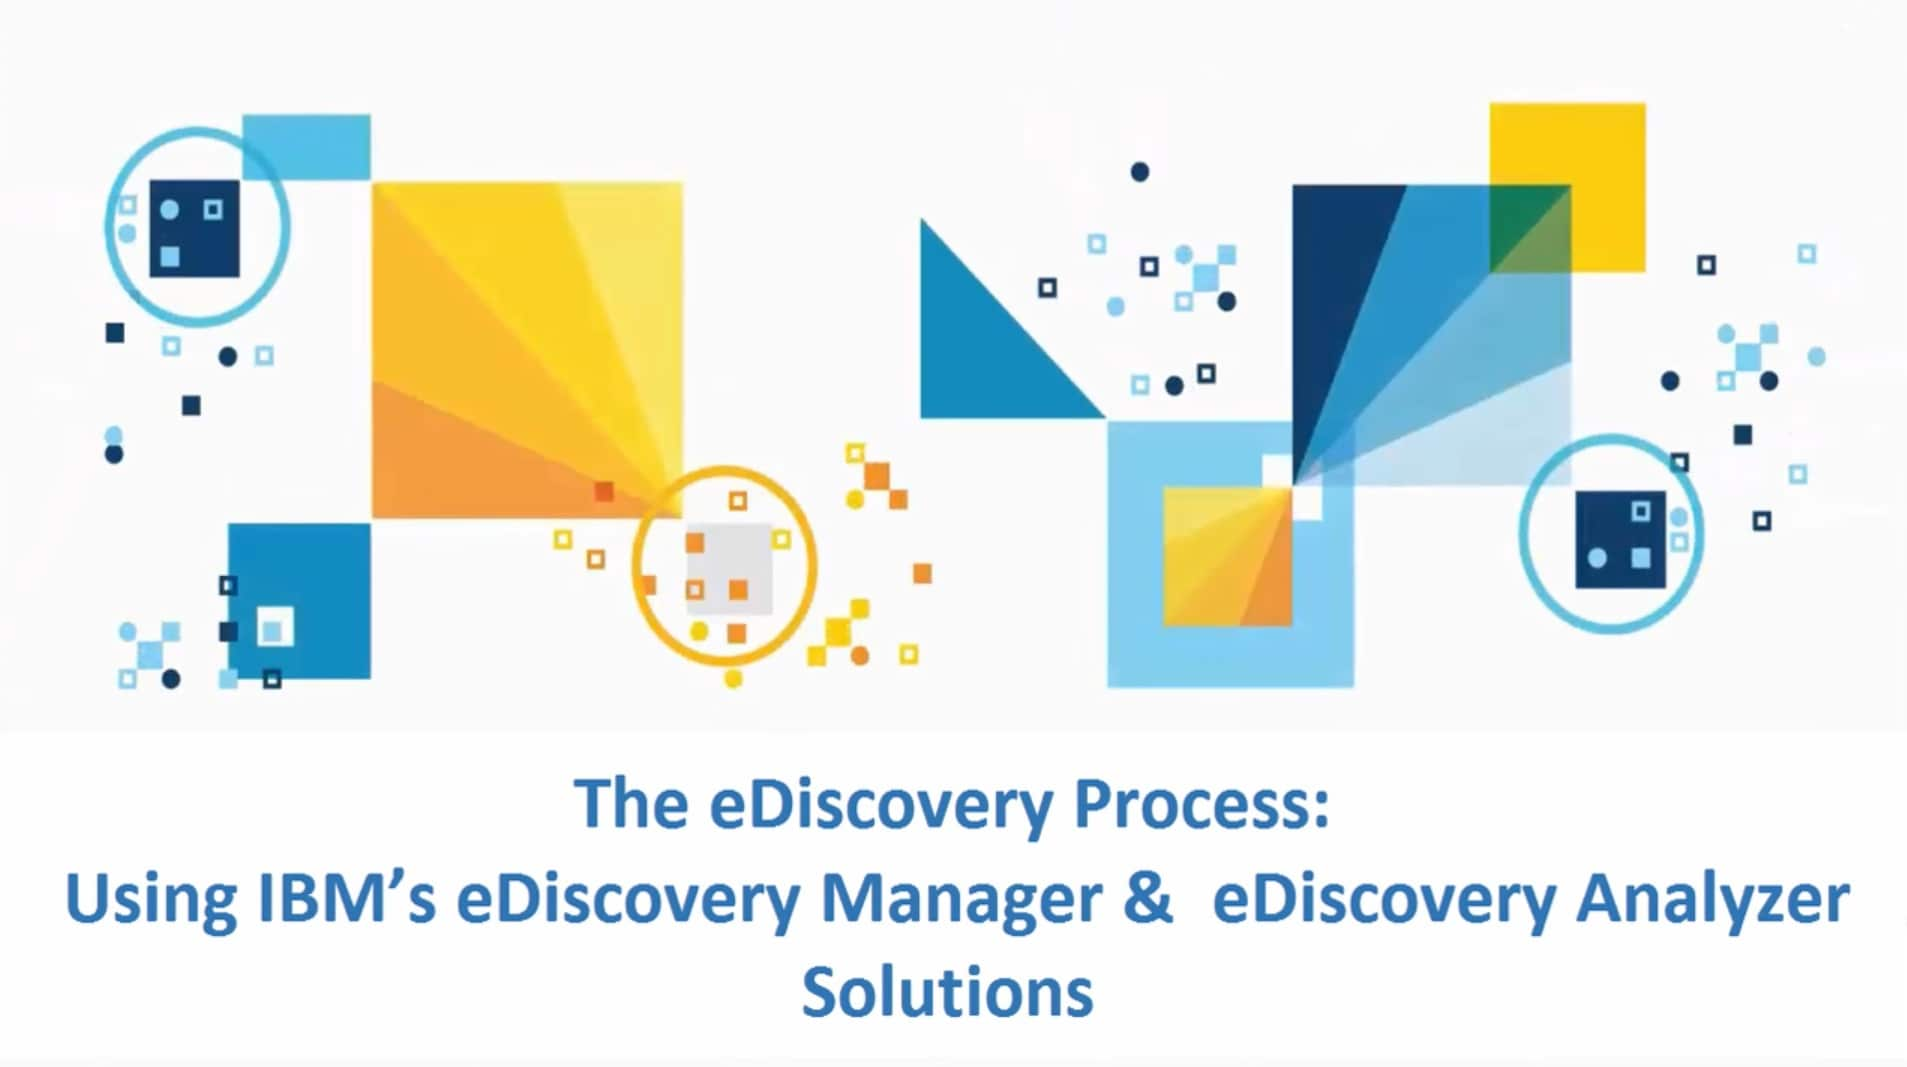 Demo - Using eDM and eDA for eDiscovery